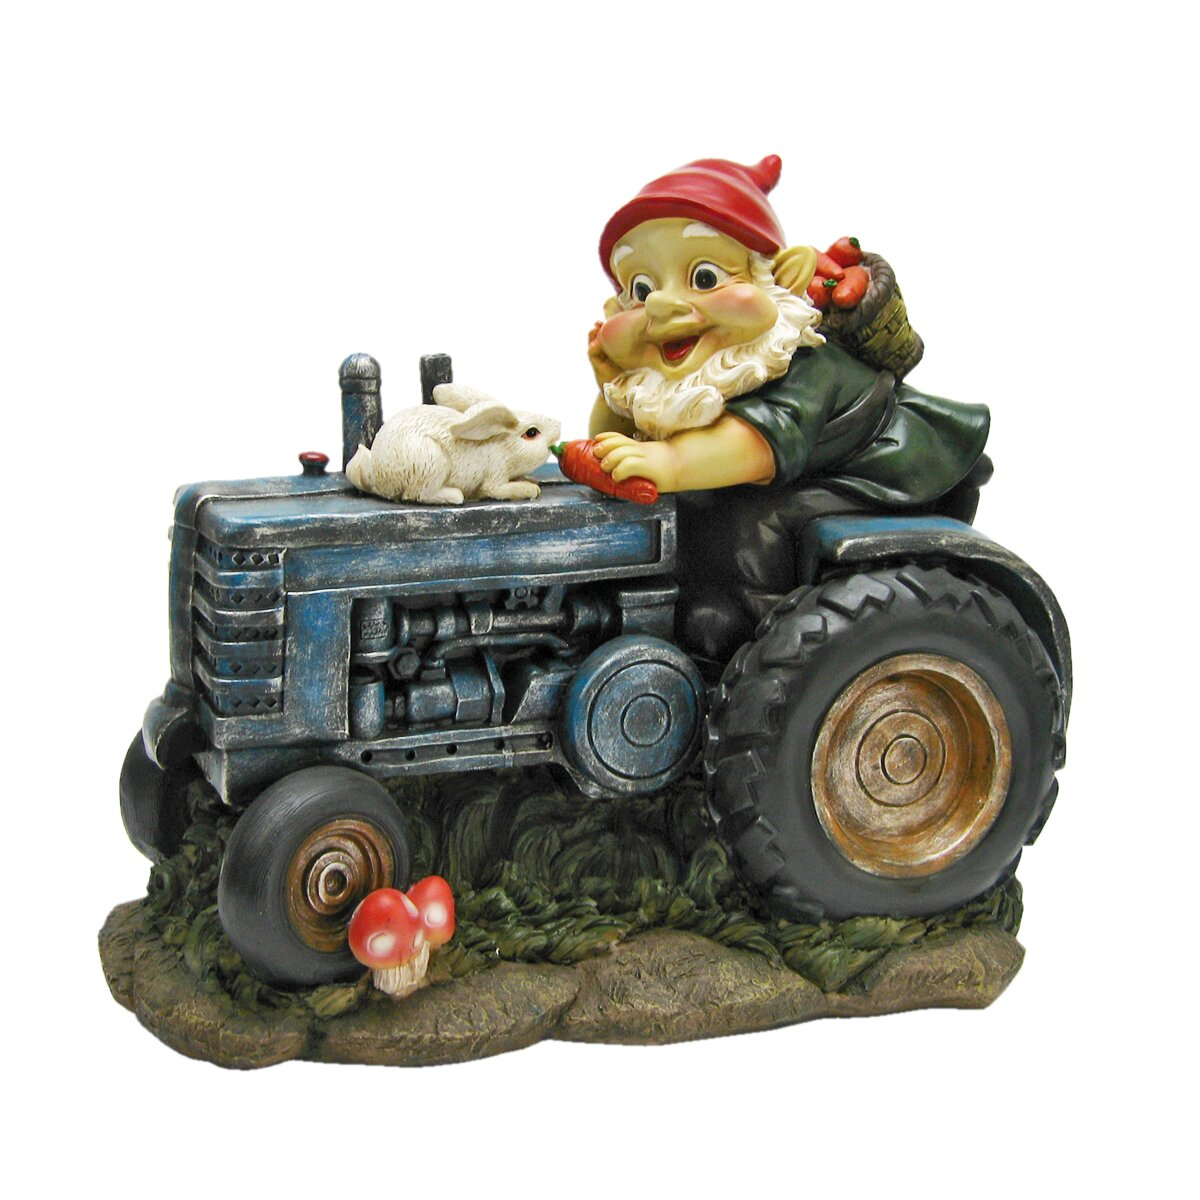 Design Toscano Bunny on Board the Tractor Garden Gnome Statue